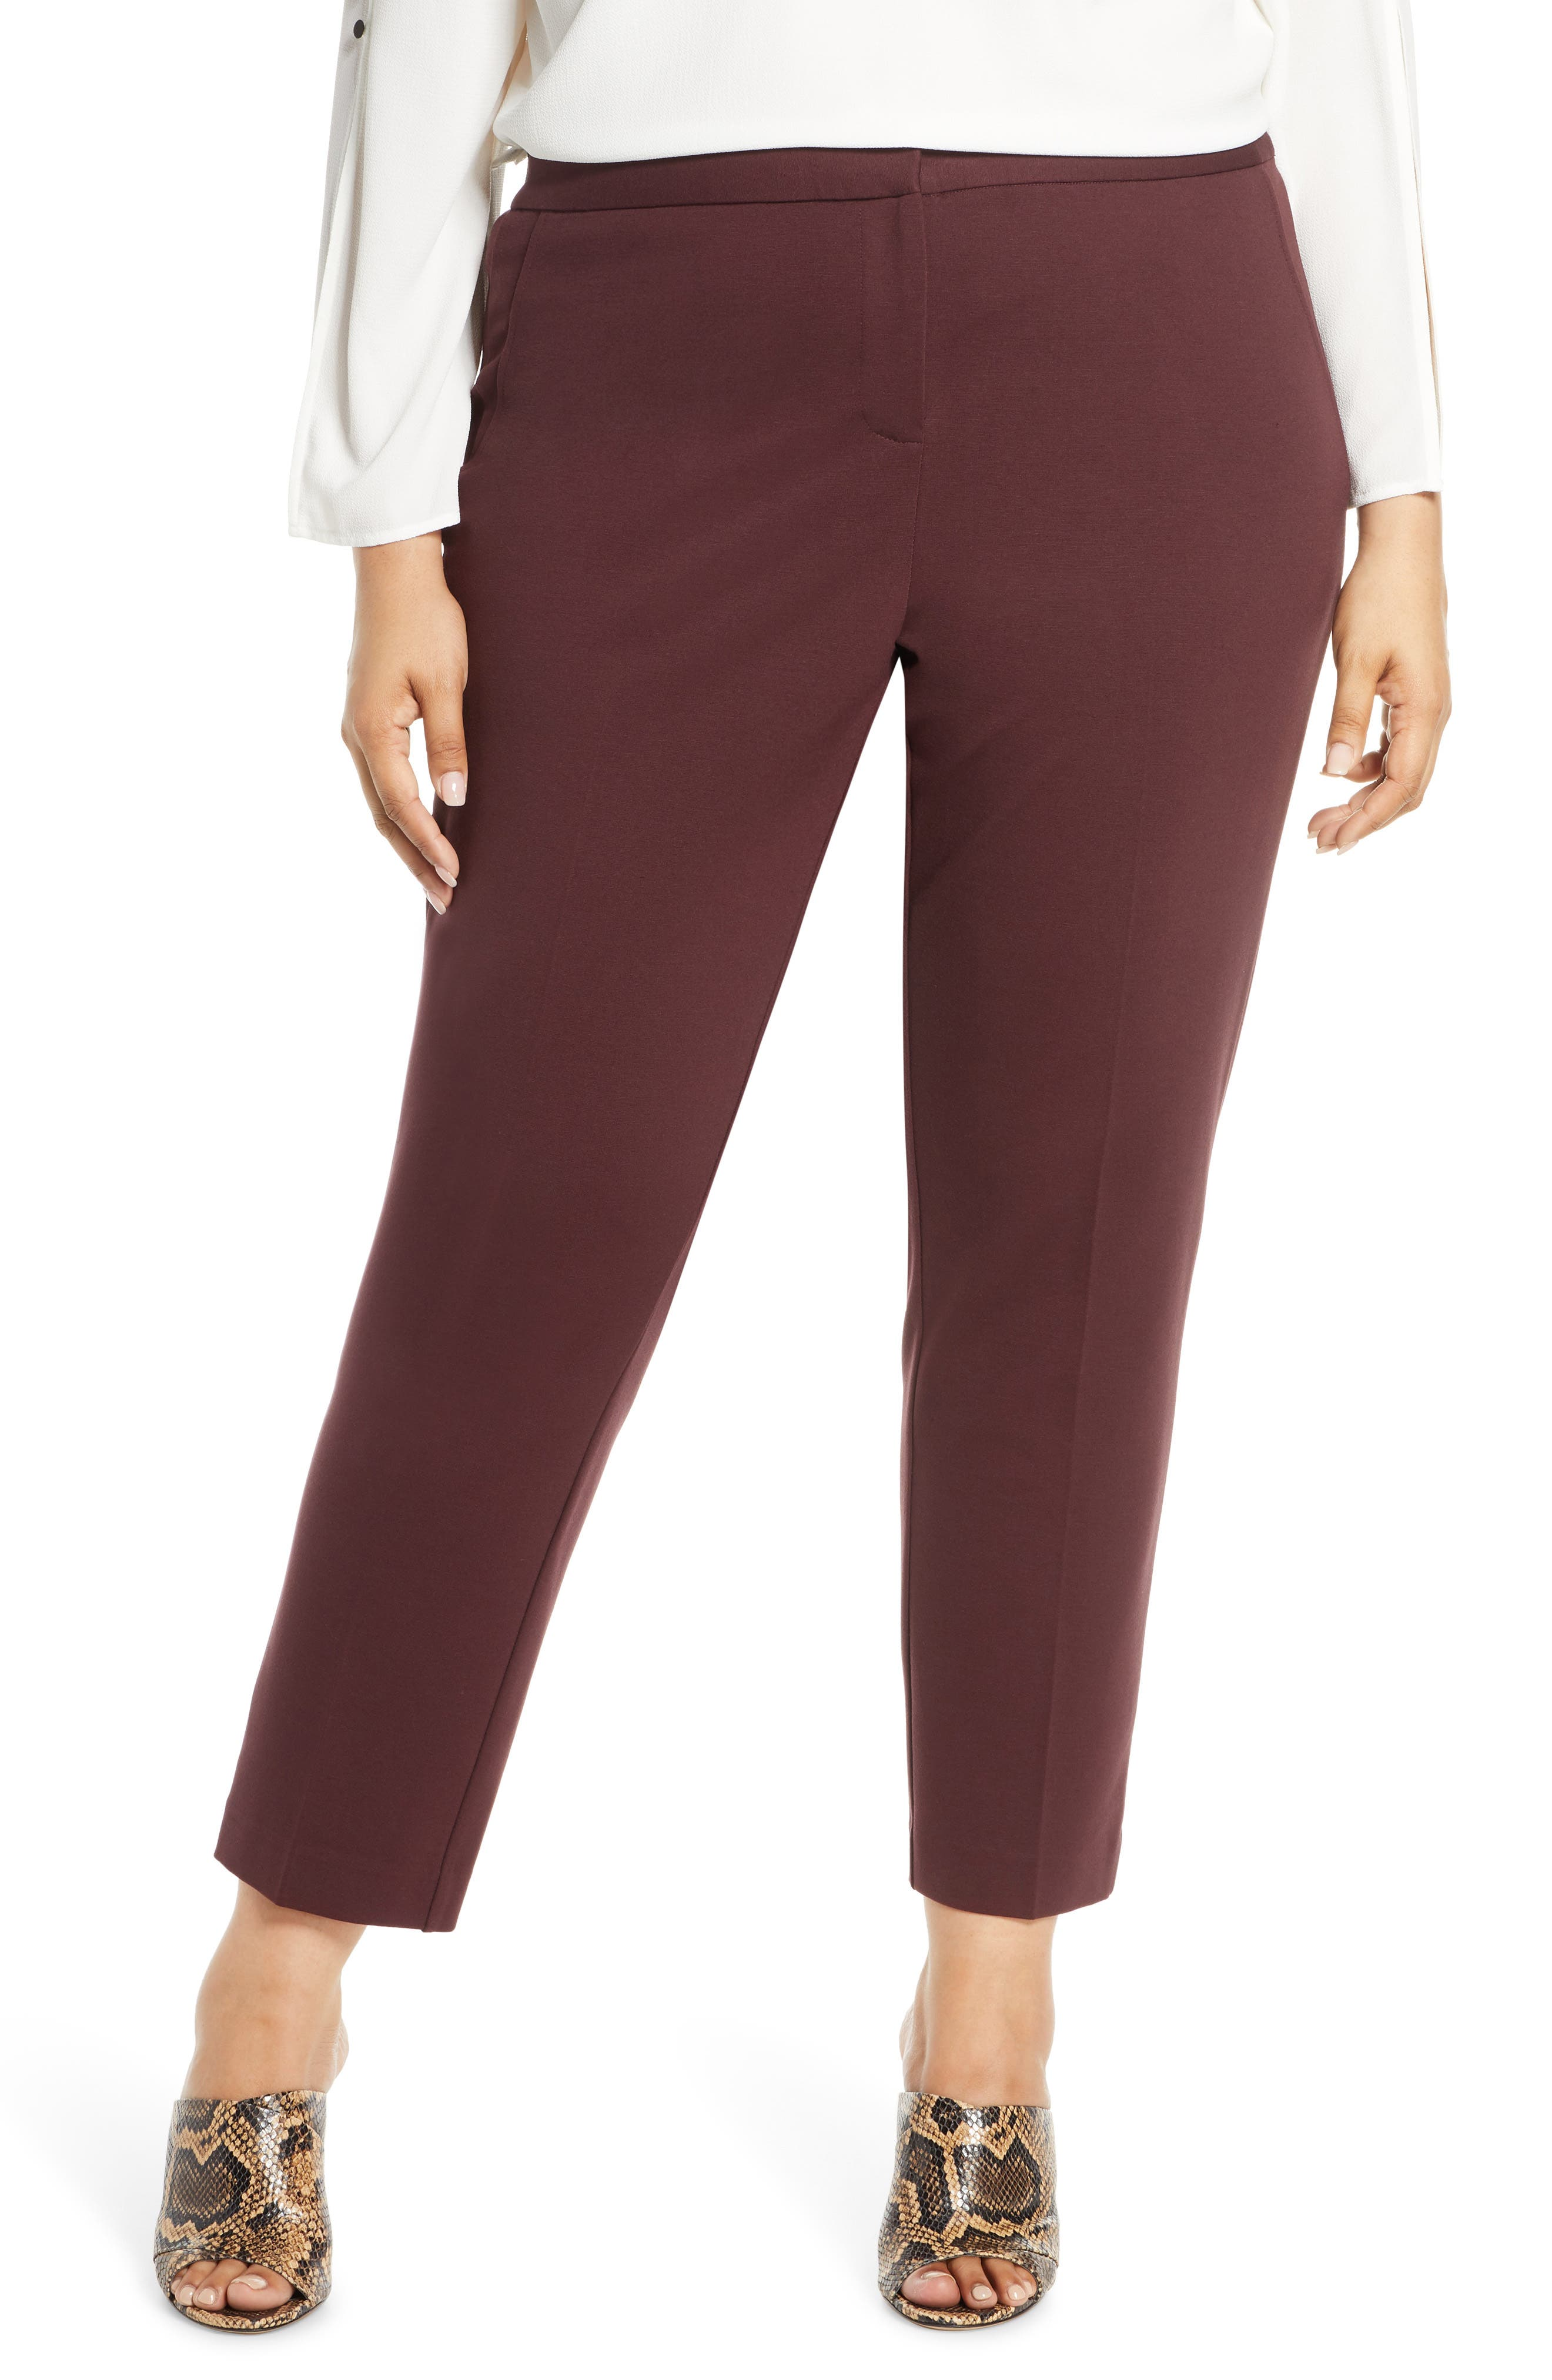 Vince Camuto High Rise Ankle Skinny Ponte Pants (Plus Size)